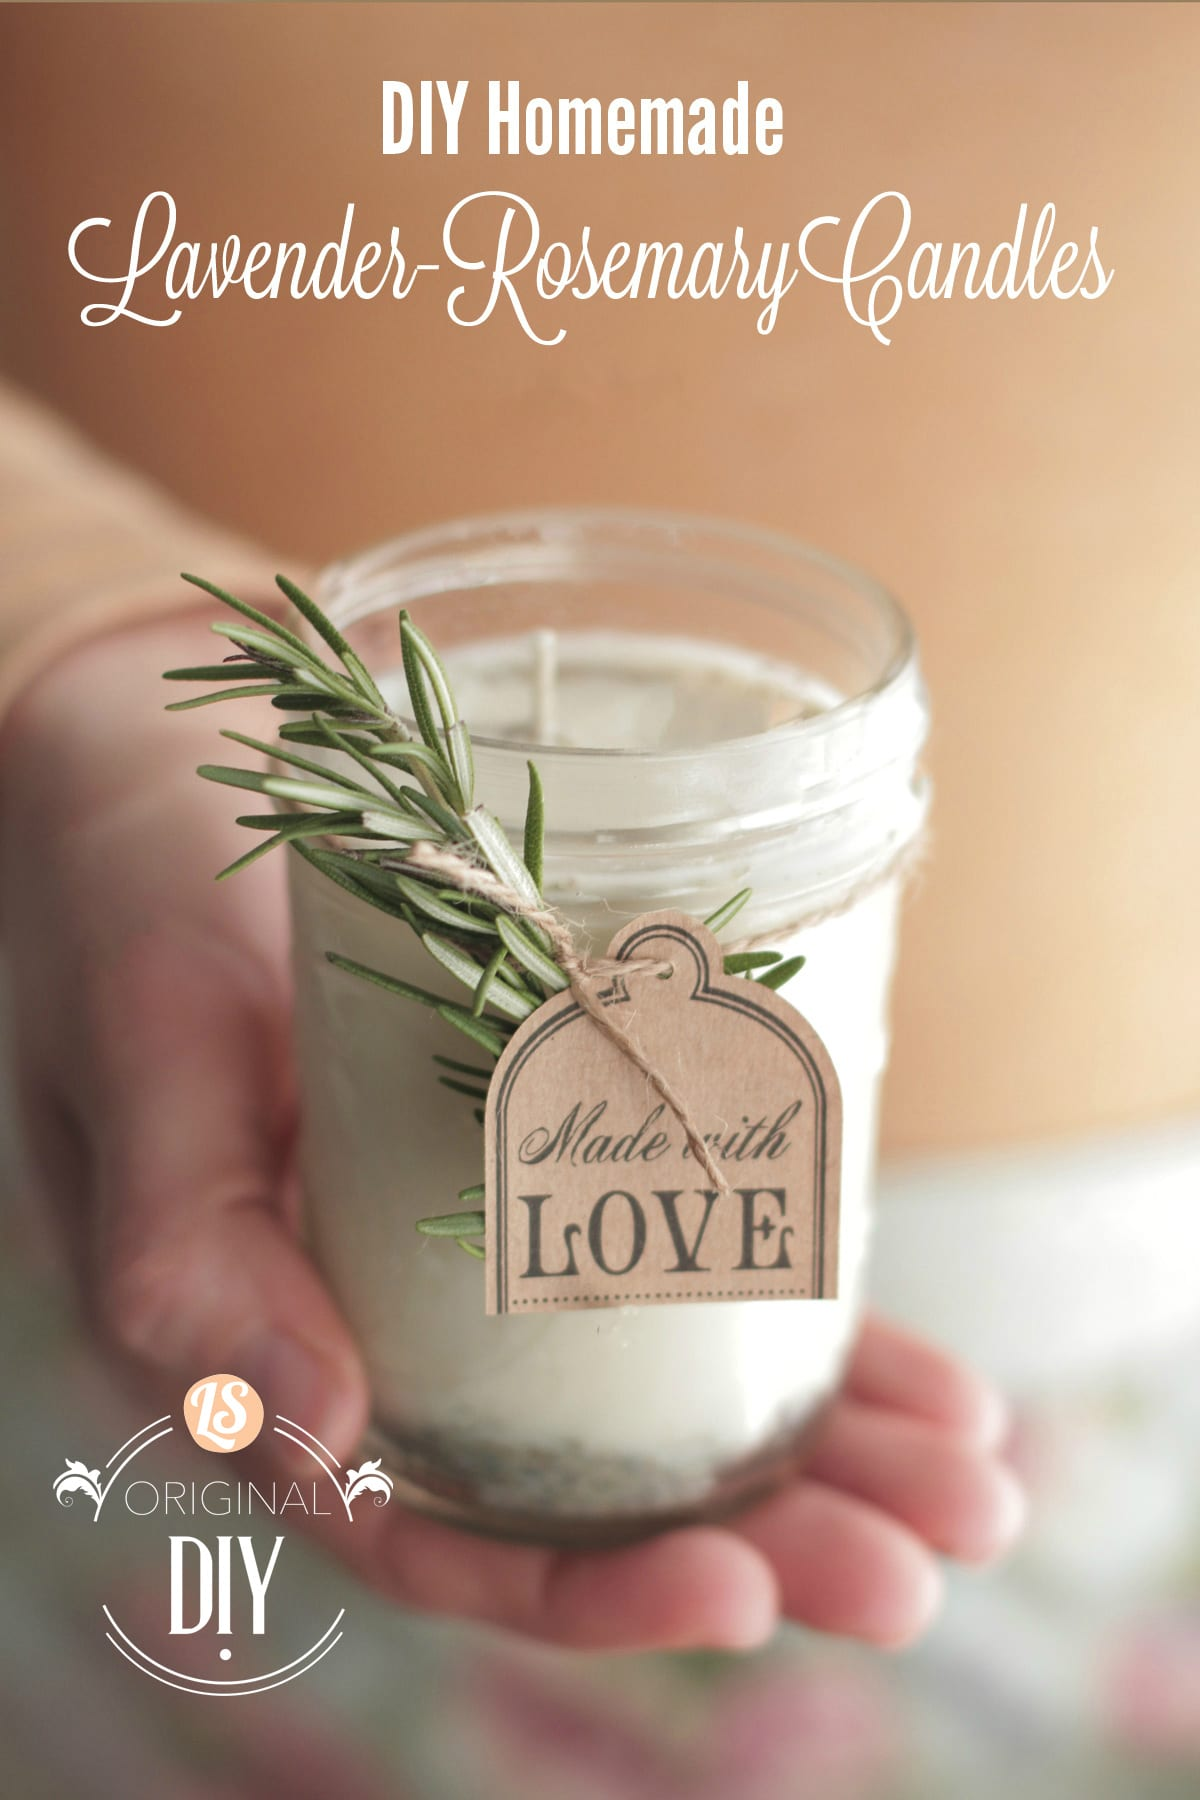 Diy Homemade Candles With Natural Lavender Rosemary Scent Live Simply